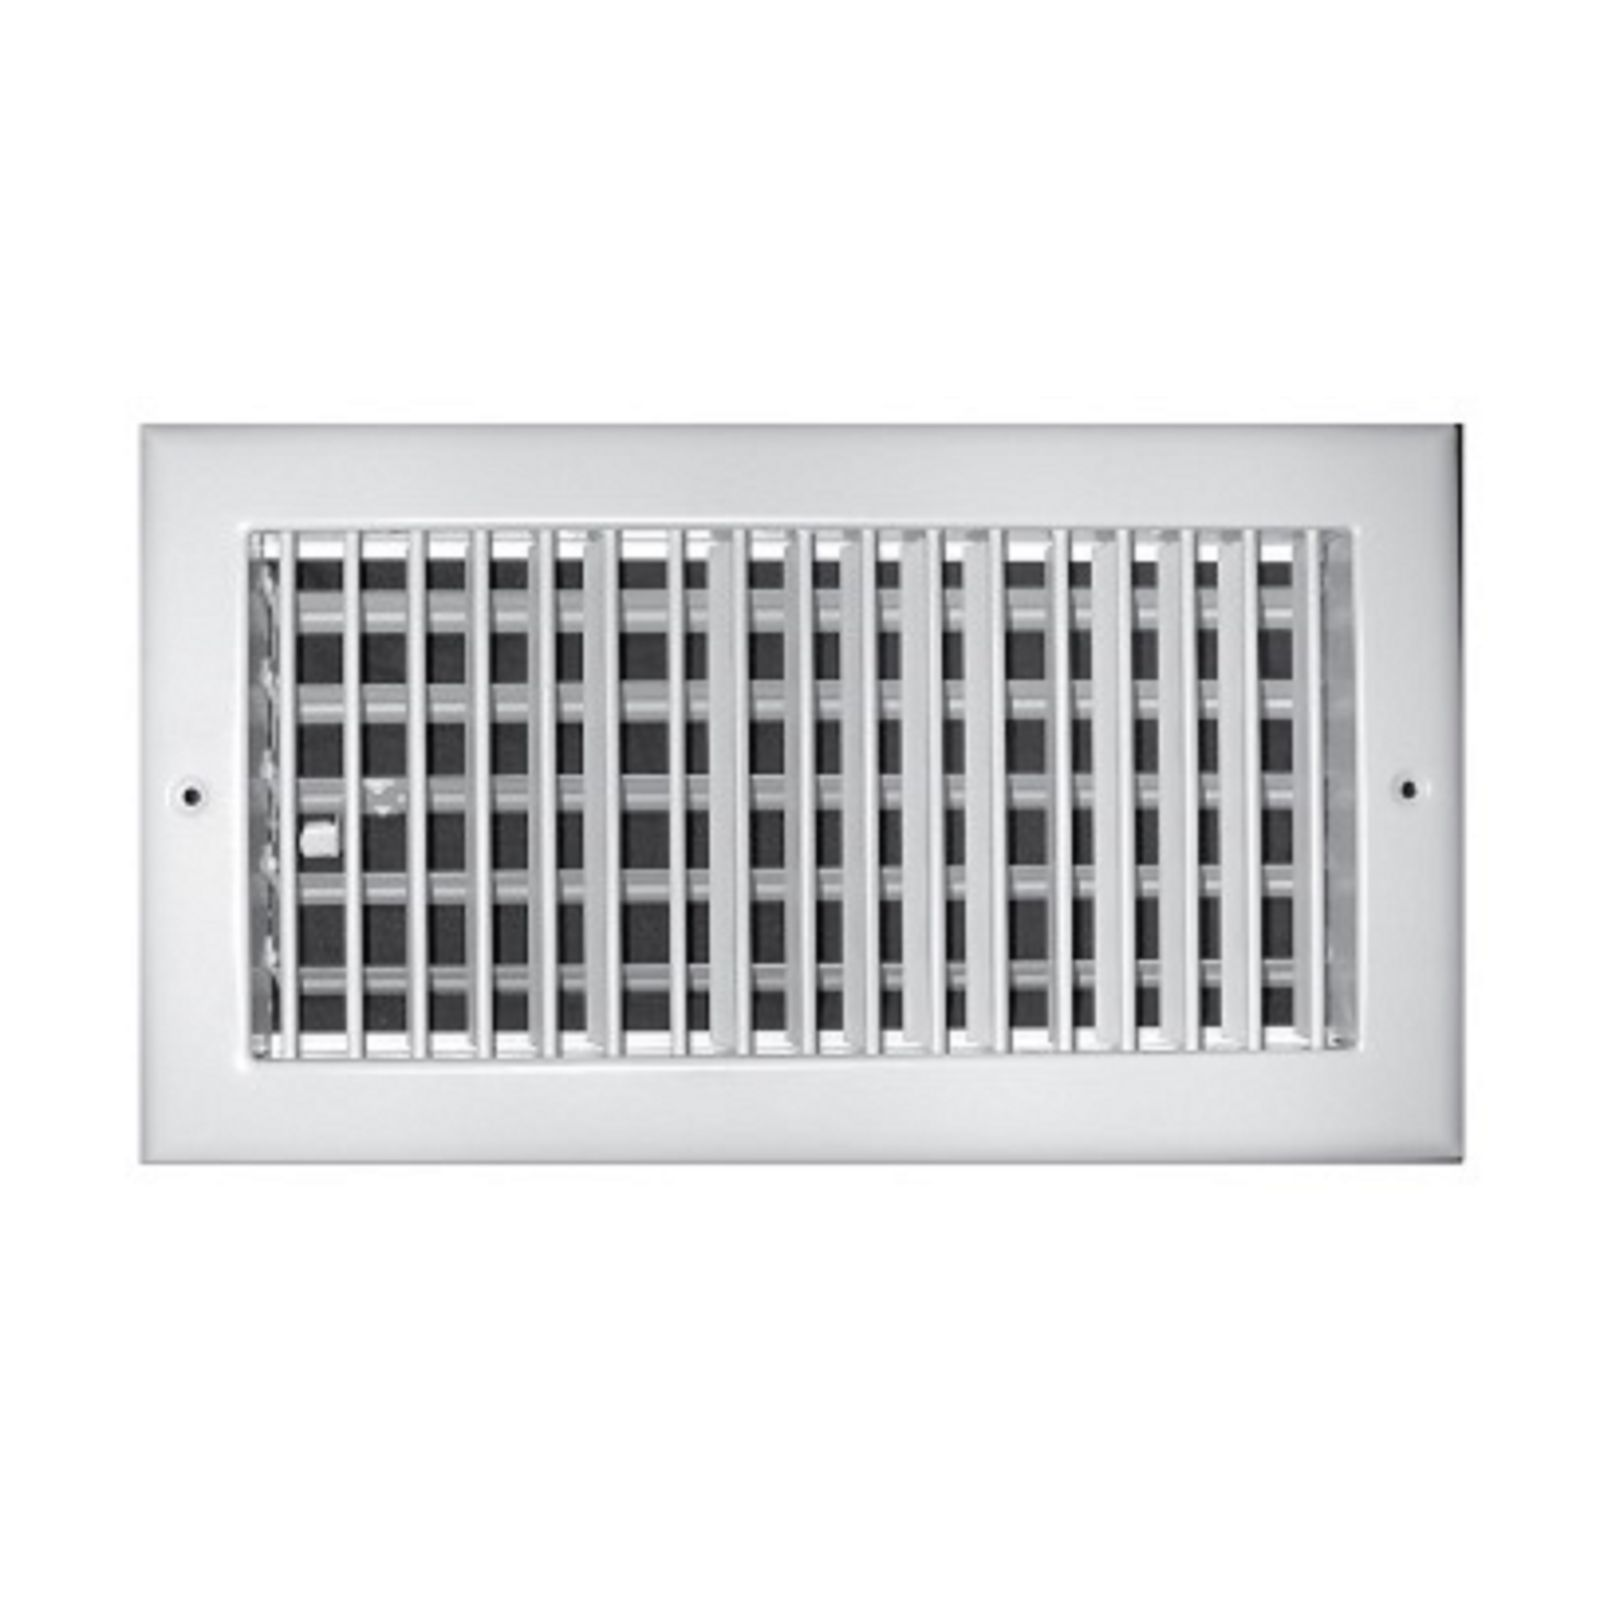 "TRUaire A210VM 10X10 - Aluminum Adjustable 1-Way Wall/Ceiling Register, Vertical, Multi Shutter Damper, White, 10"" X 10"""